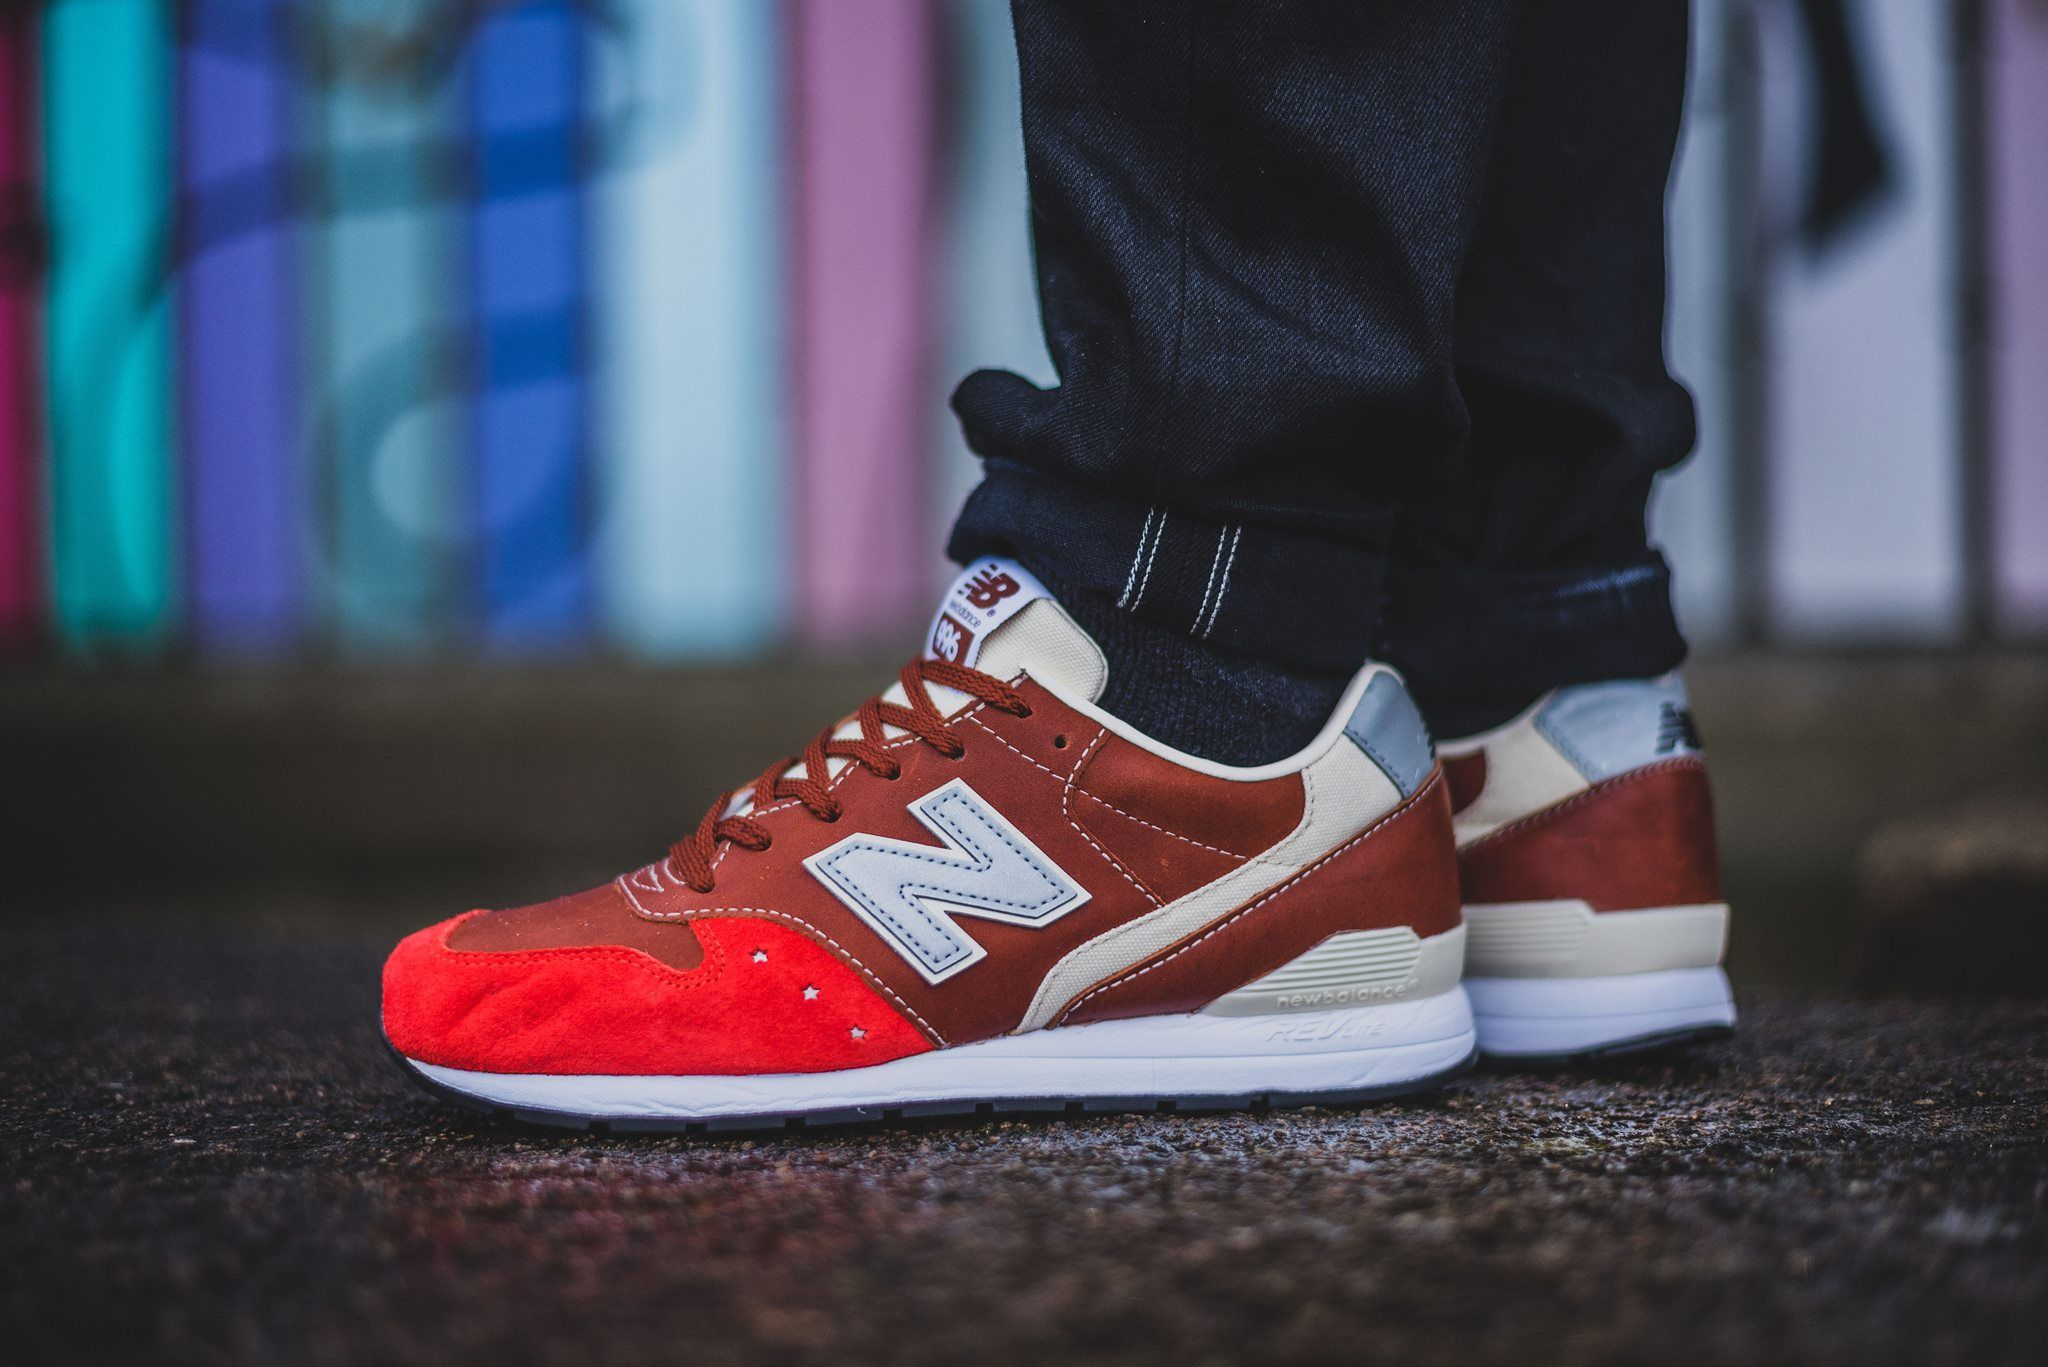 online store e9b81 2f996 WHIZ LIMITED x mita Sneakers x New Balance MRL996WM New Balance 996, Shoes  Sneakers,